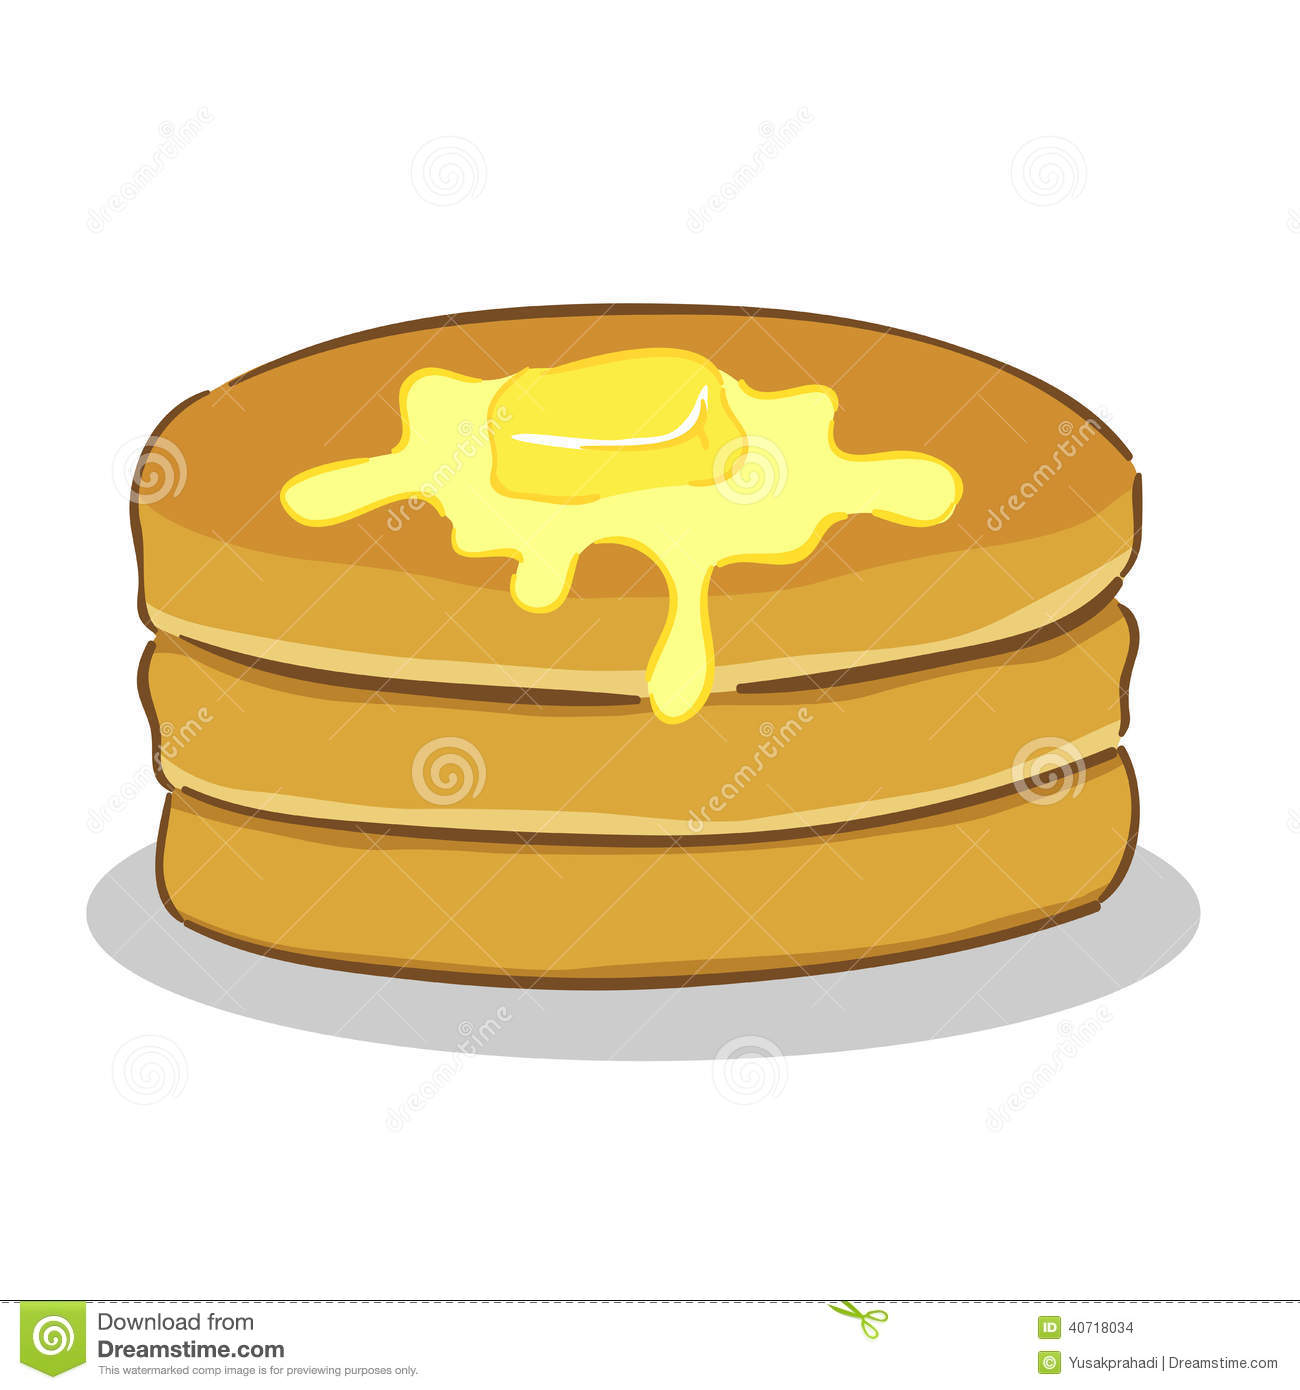 Pancake with butter stock vector. Image of hotcakes ...